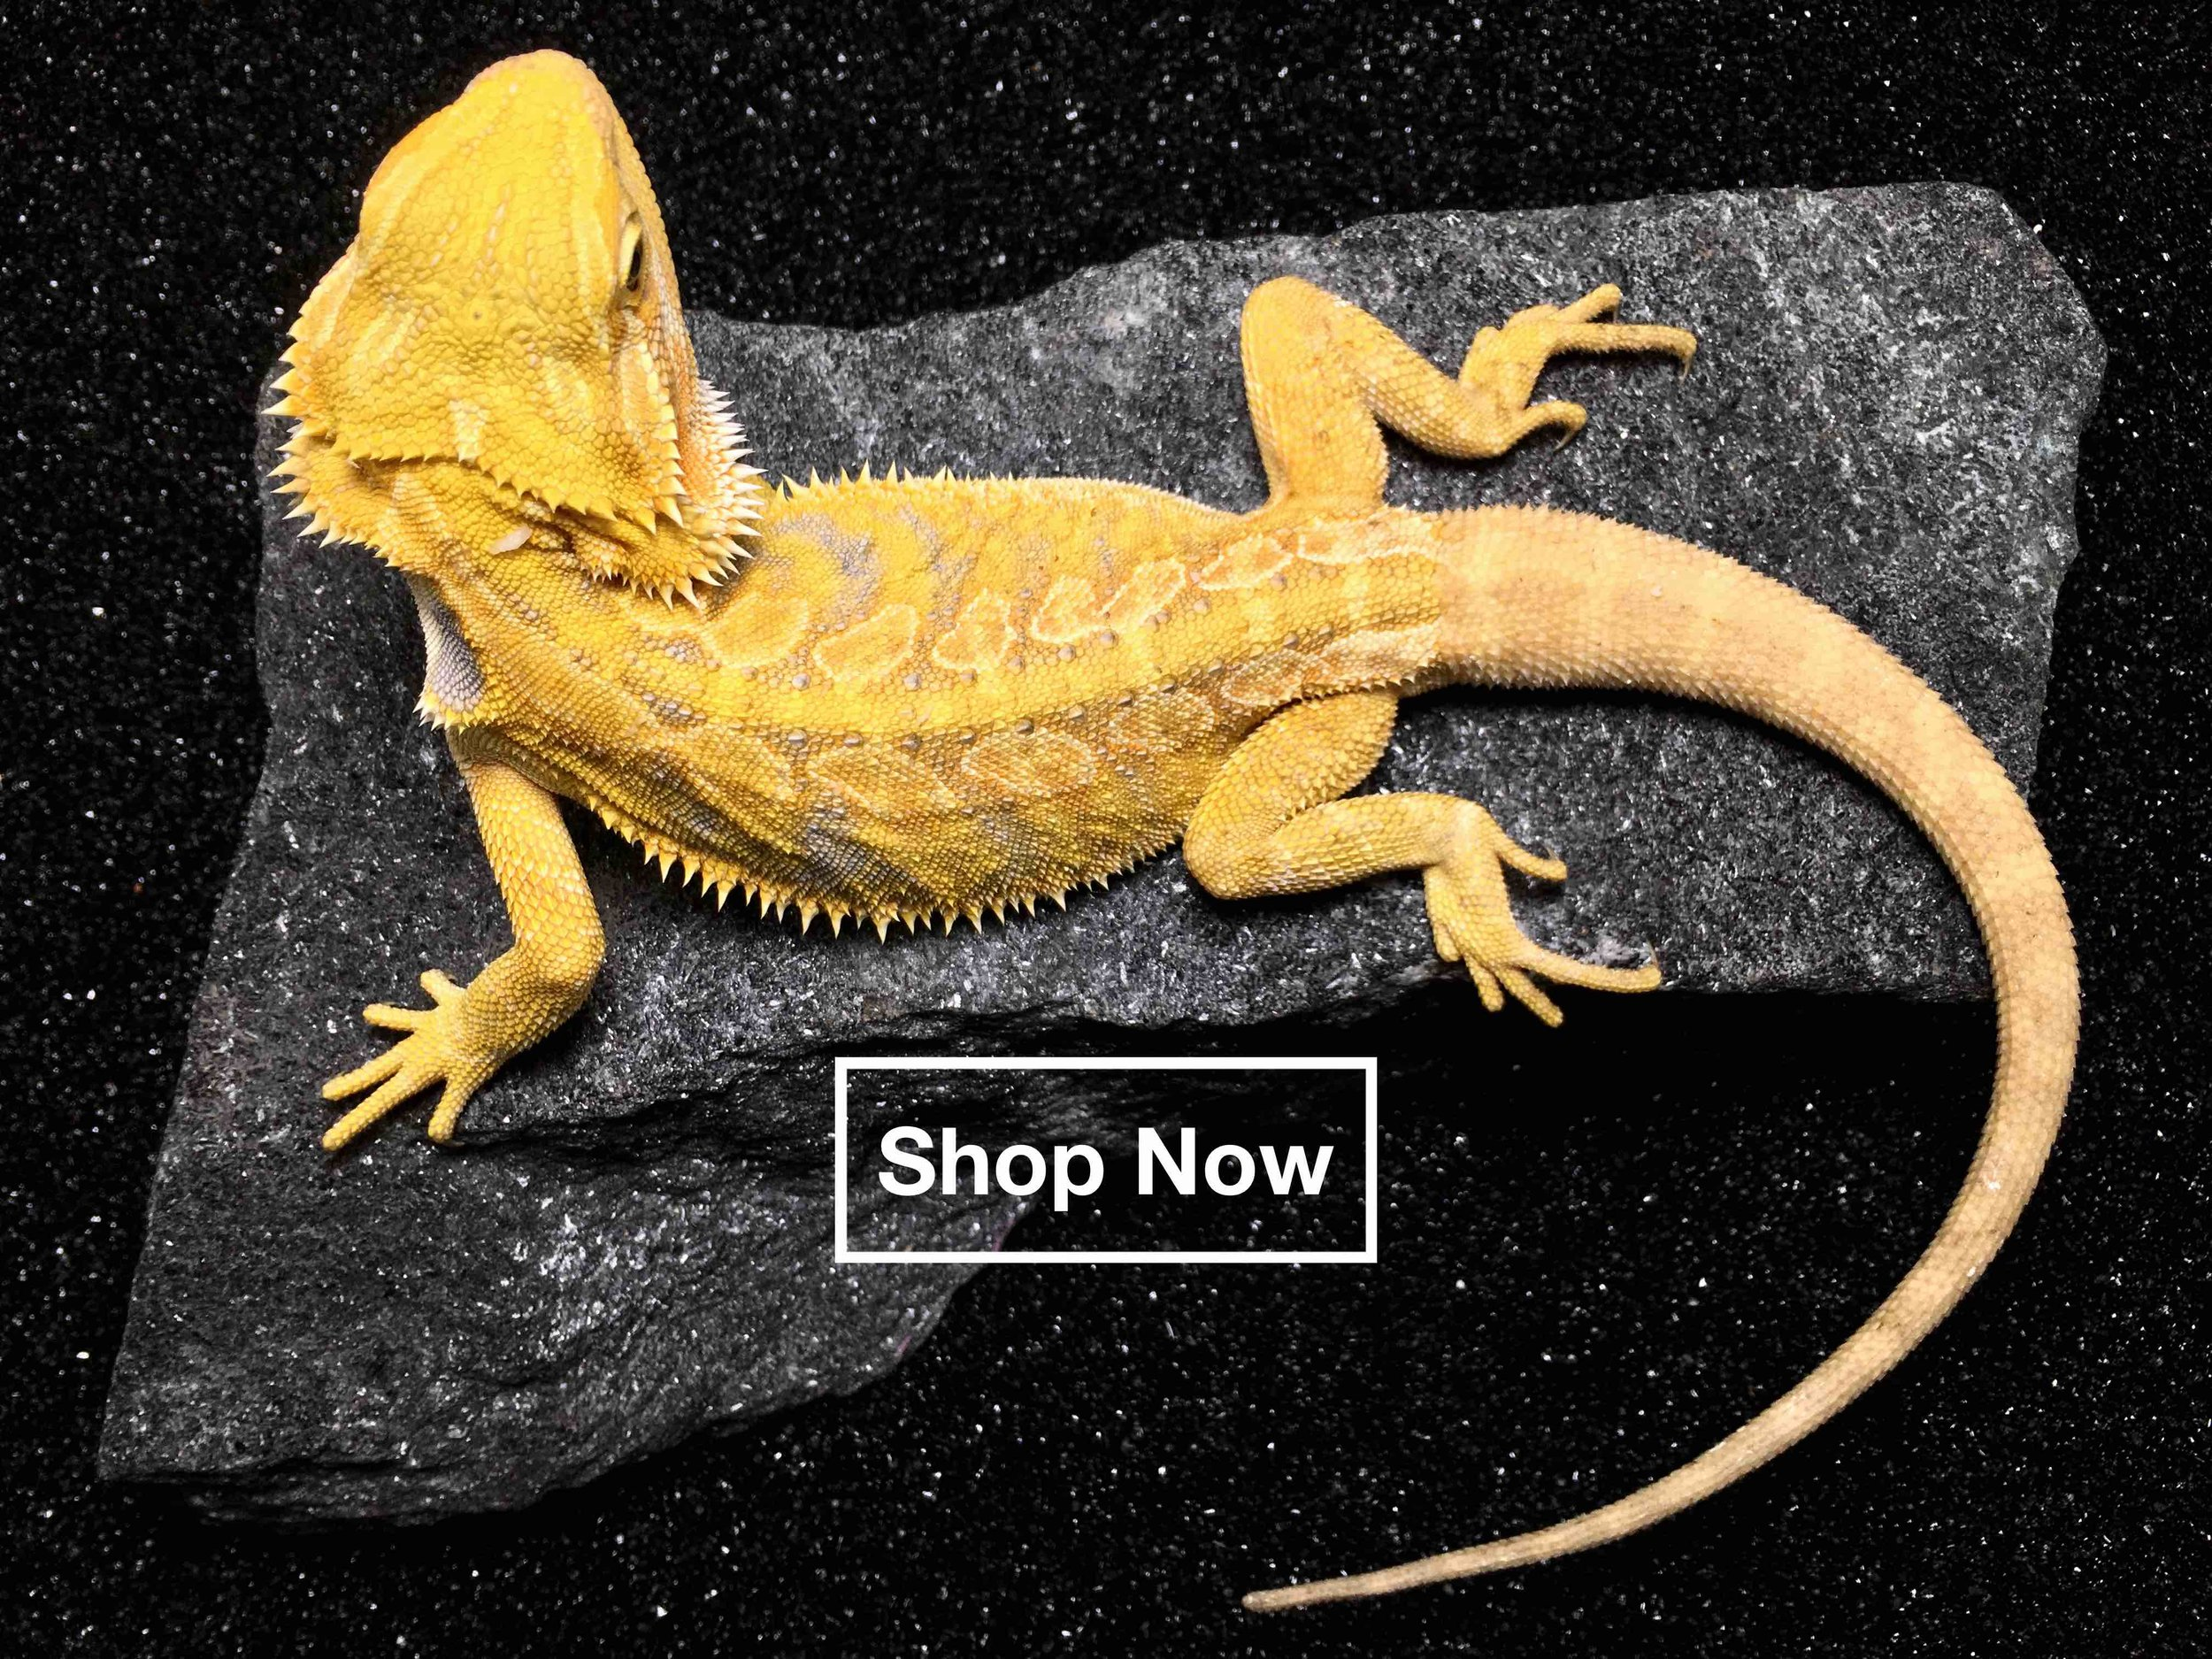 Bearded dragons for sale - citrus leatherback bearded dragon